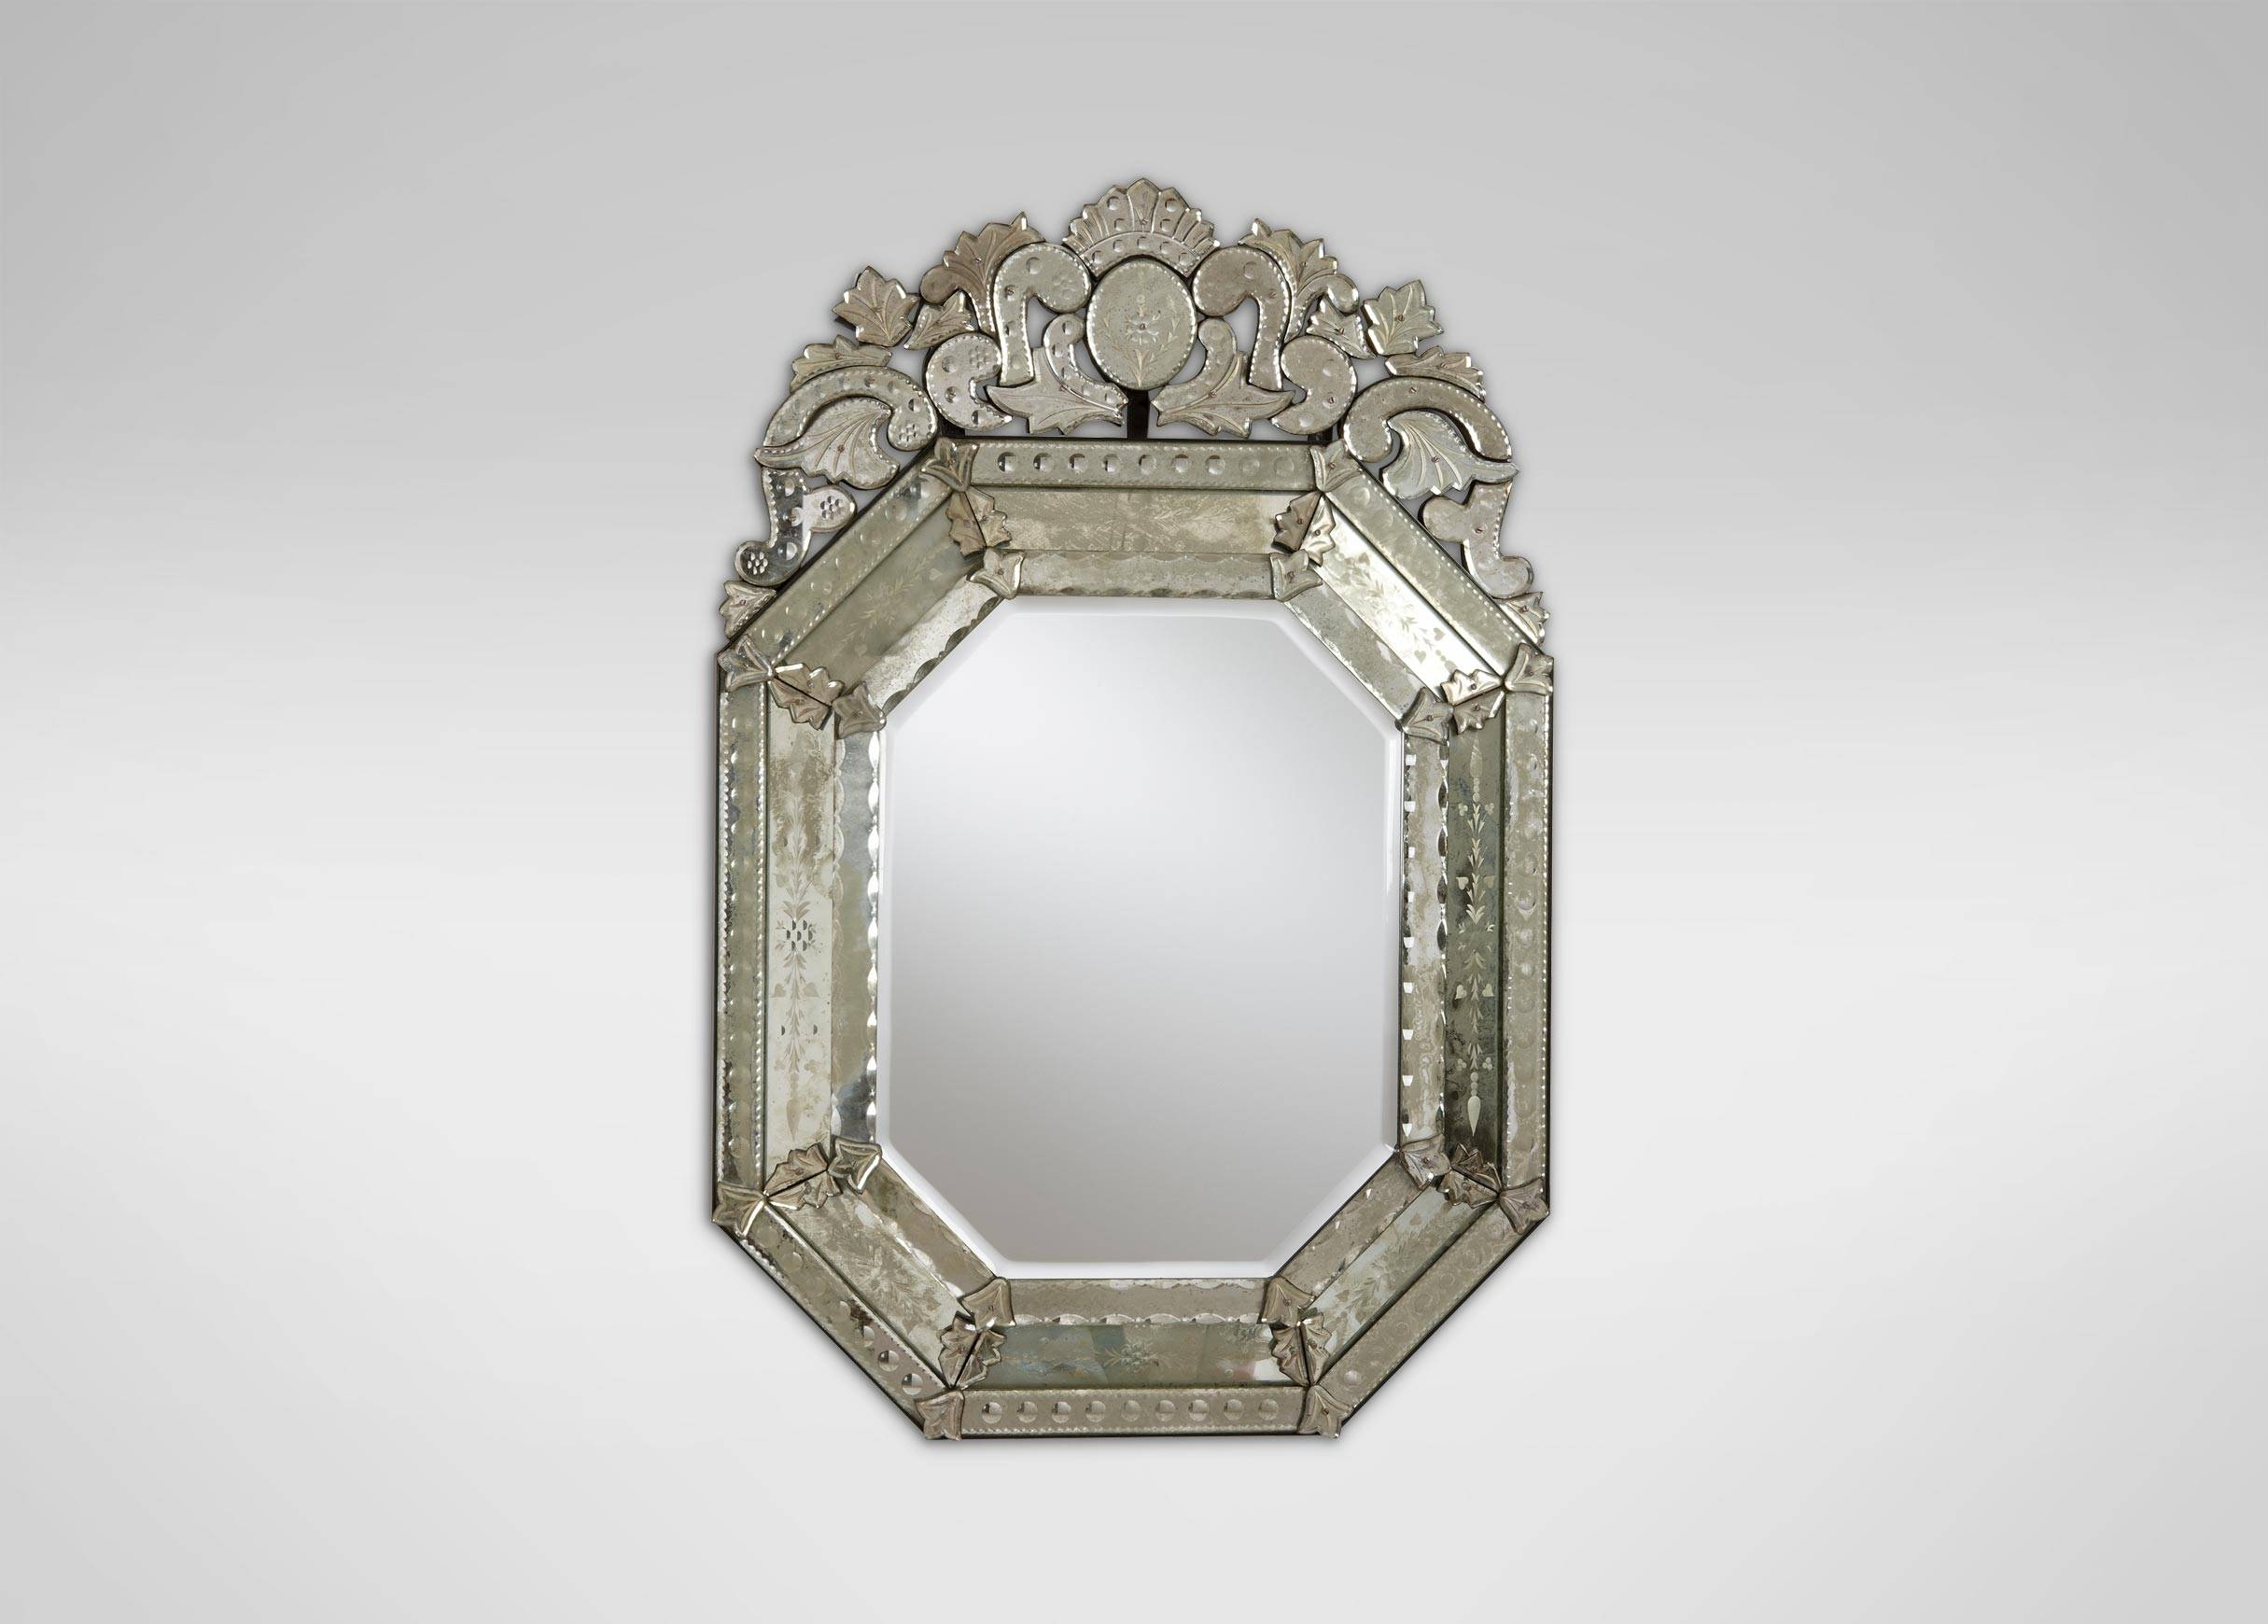 Interior: Vintage Venetian Mirror For Classic Interior Decor pertaining to Venetian Tray Mirrors (Image 13 of 25)